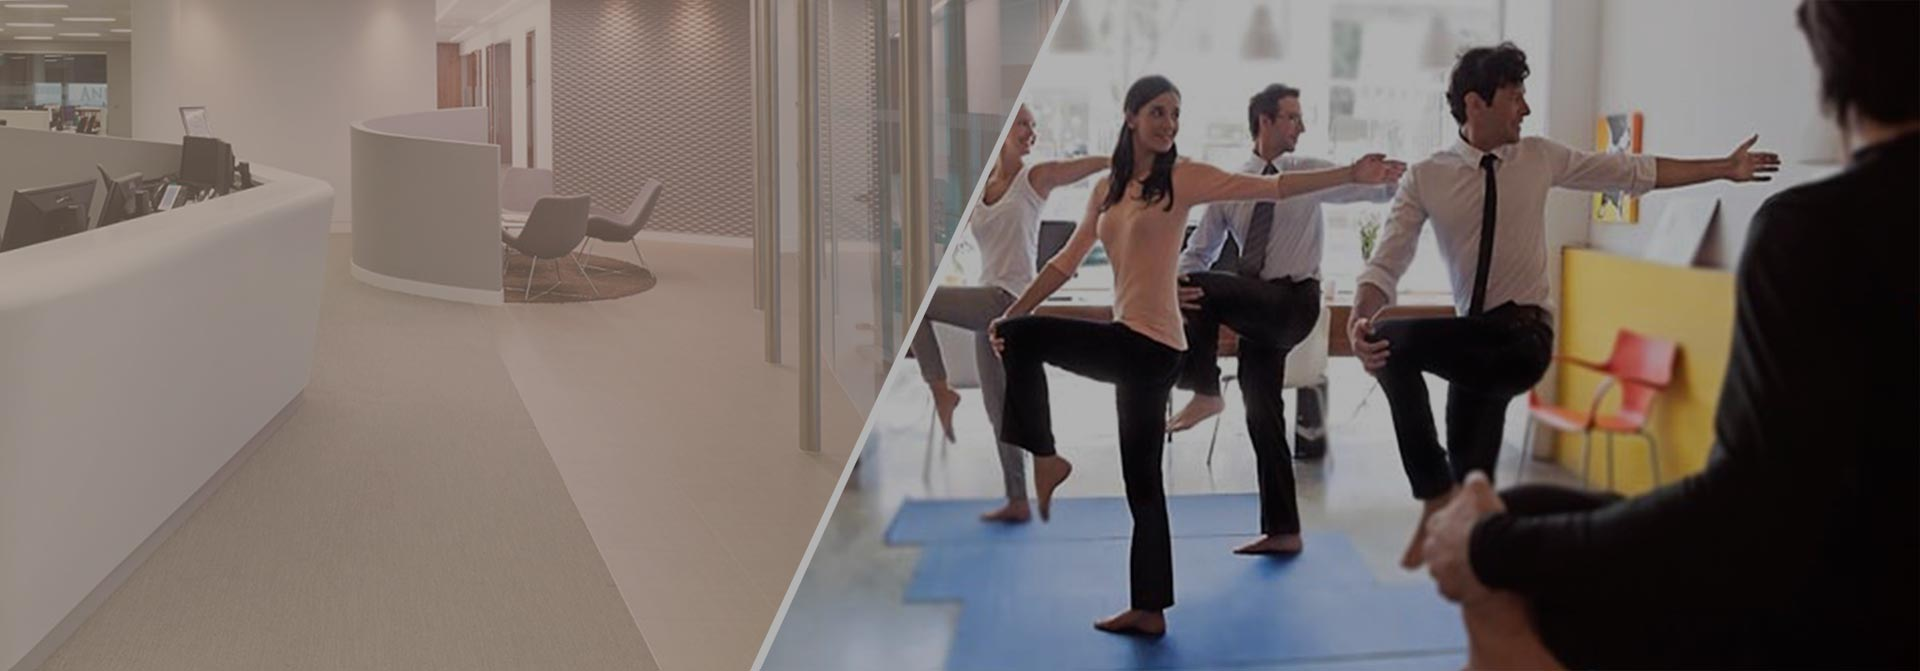 page-workplace-wellbeing-uni-yoga-dublin